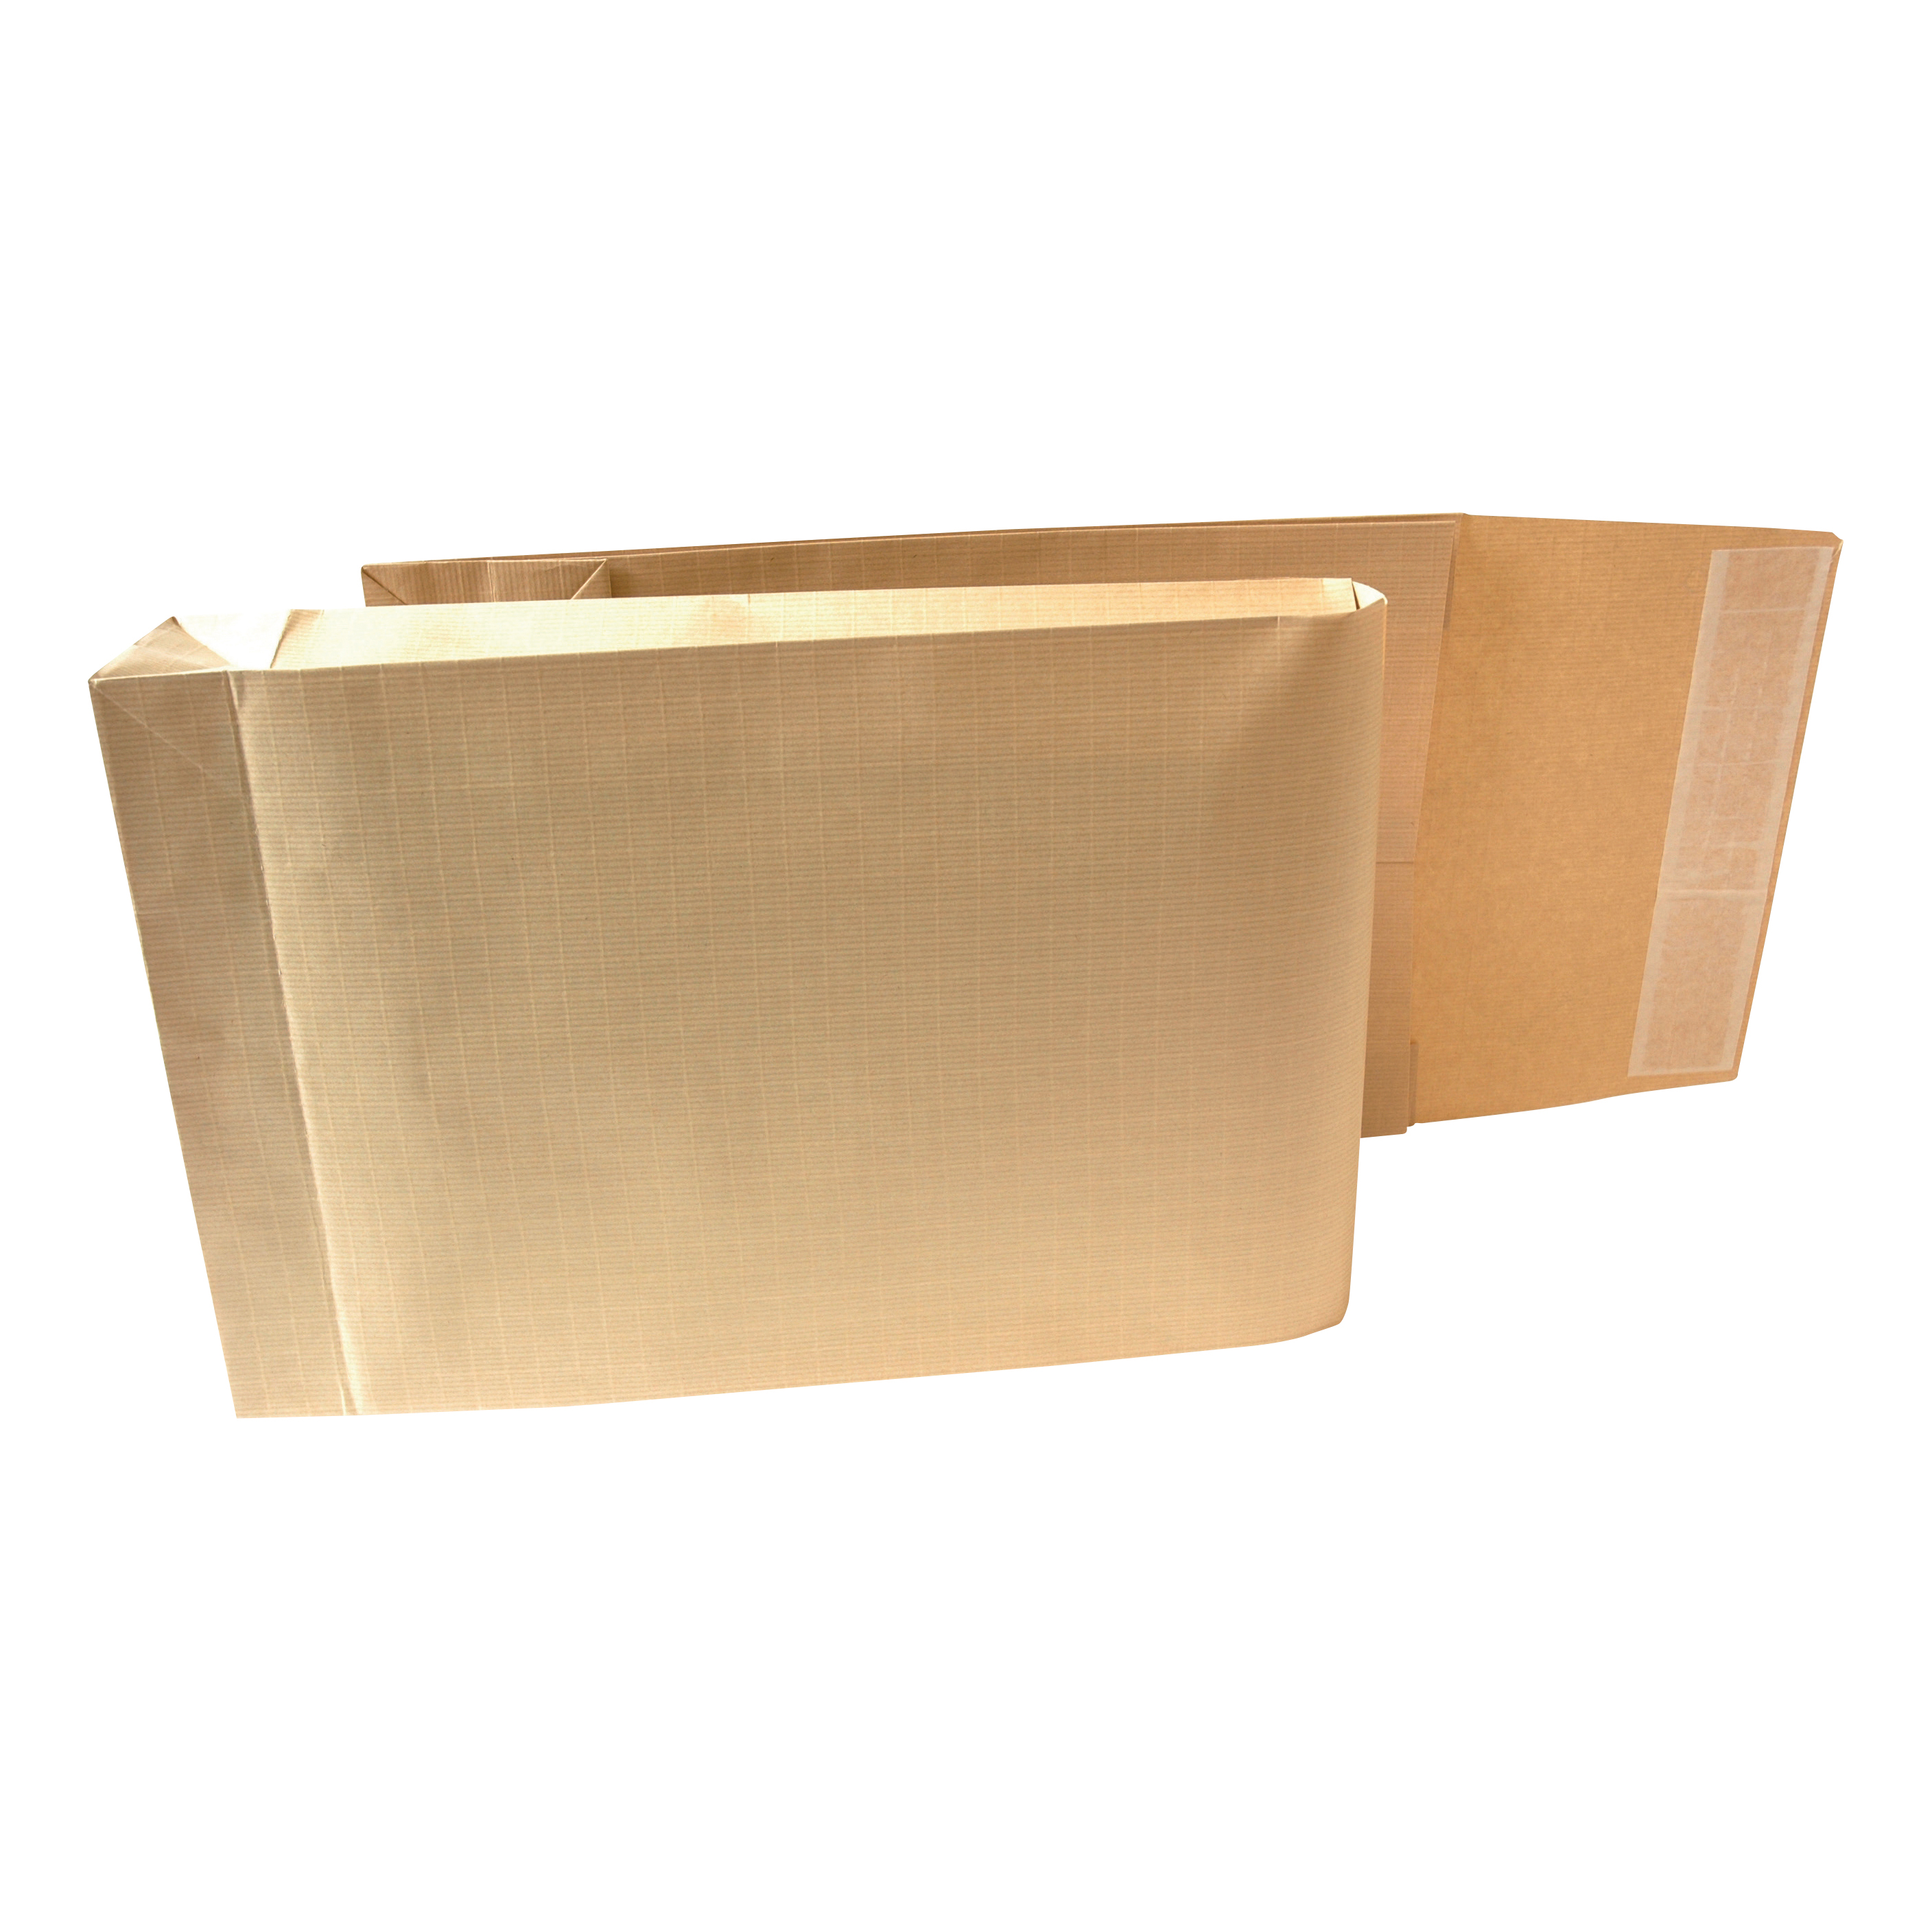 New Guardian Armour Envelopes 465x340mm Gusset 50mm Peel&Seal 130gsm Kraft Manilla Ref L28413 [Pack 100]